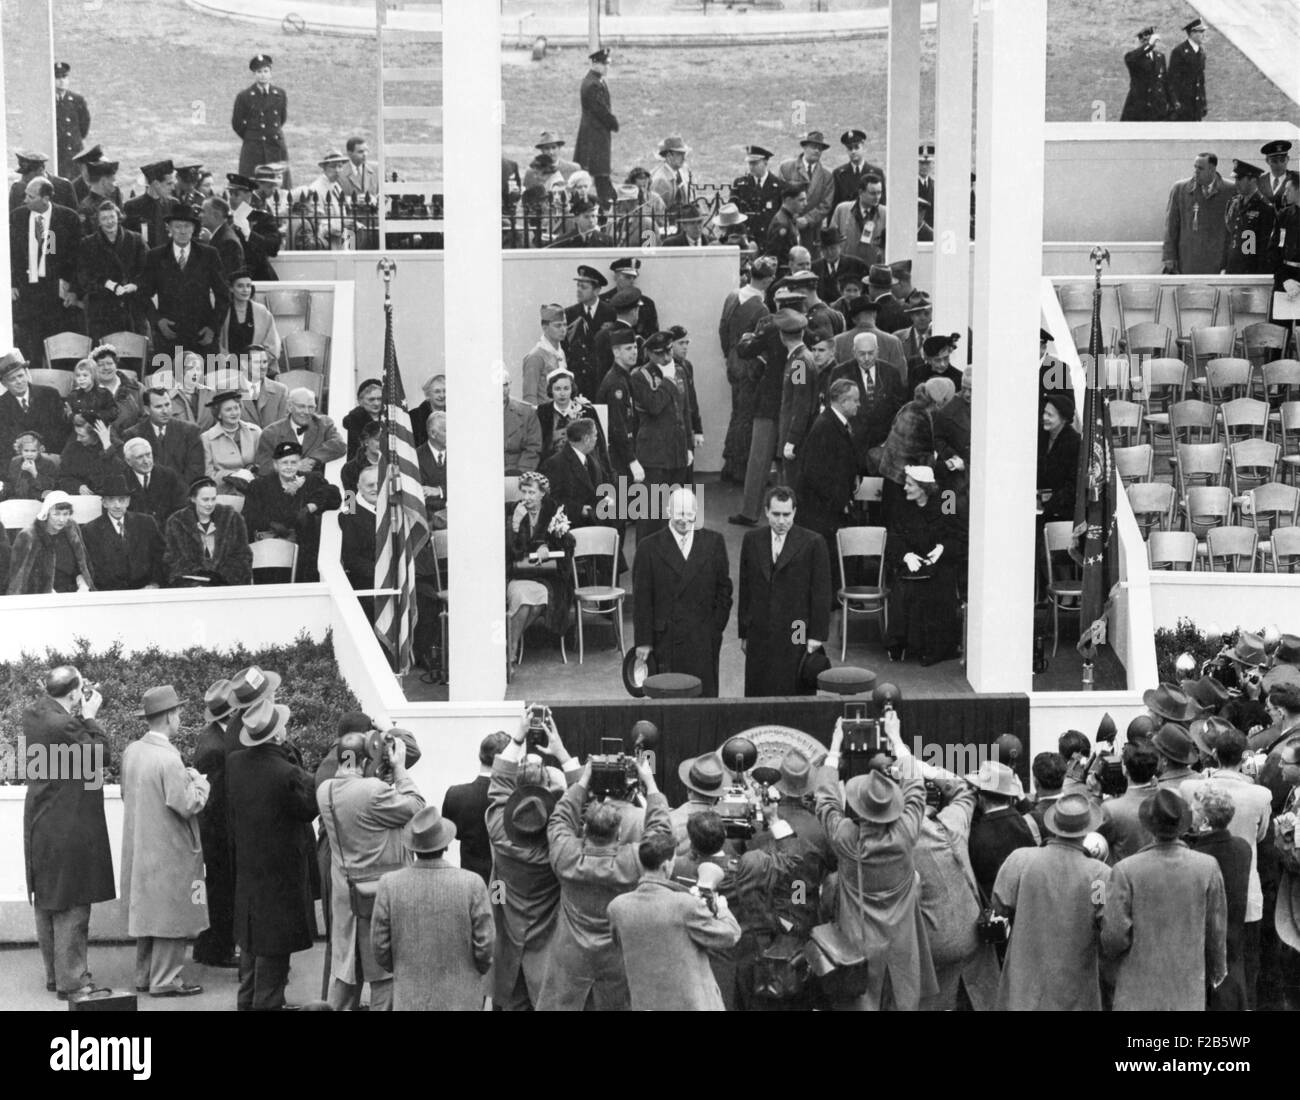 President Eisenhower and VP Nixon together on the White House Inaugural parade pavilion. Jan. 20, 1953. - (BSLOC - Stock Image